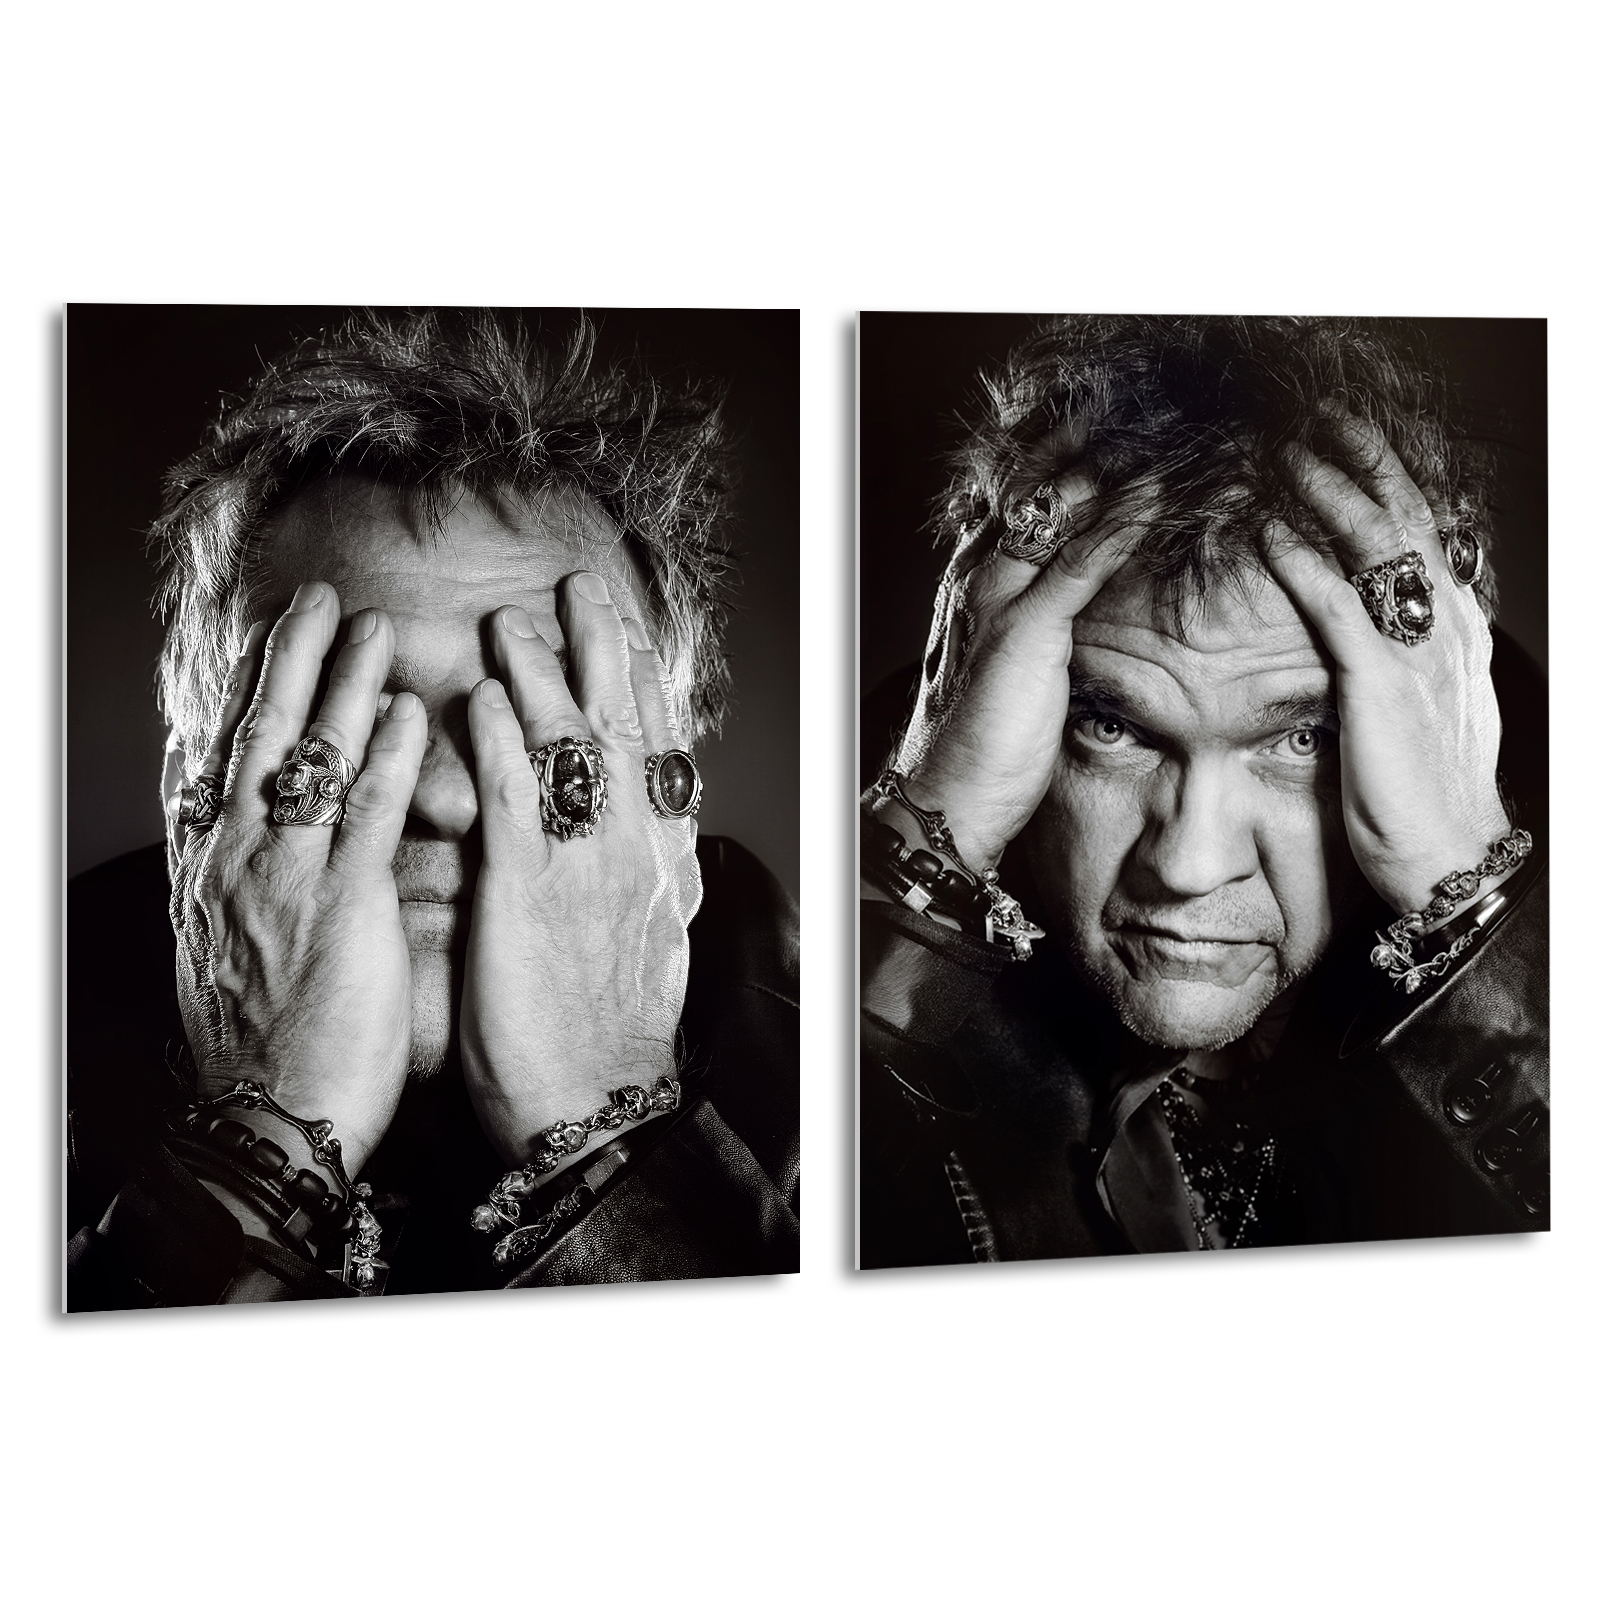 MEAT LOAF Hands Series Gallery Edition Large Format Prints